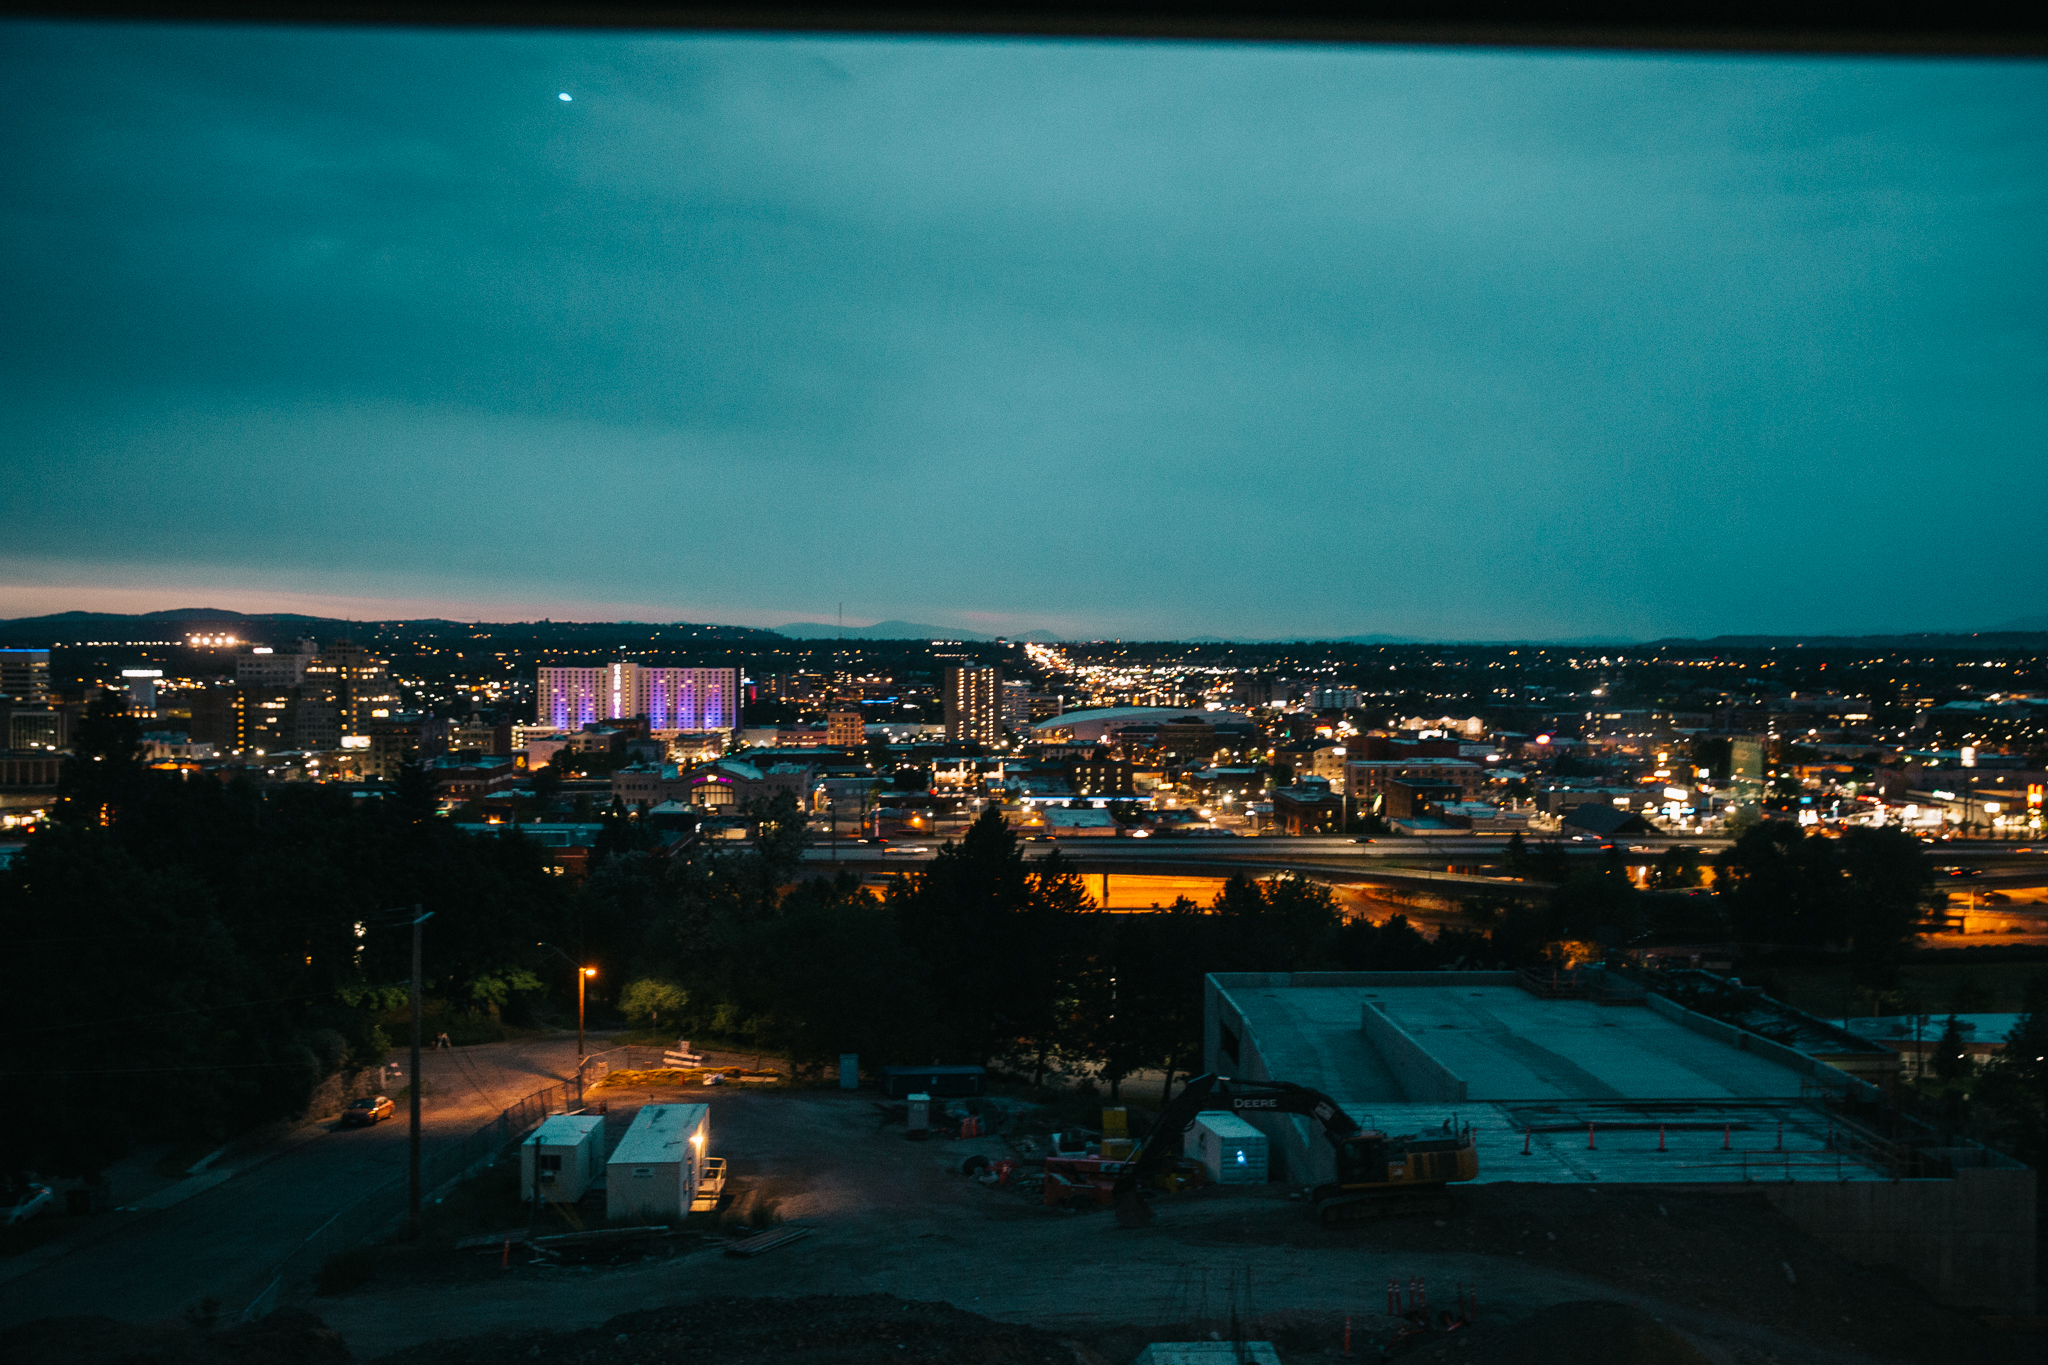 The view of Downtown Spokane from our hospital room